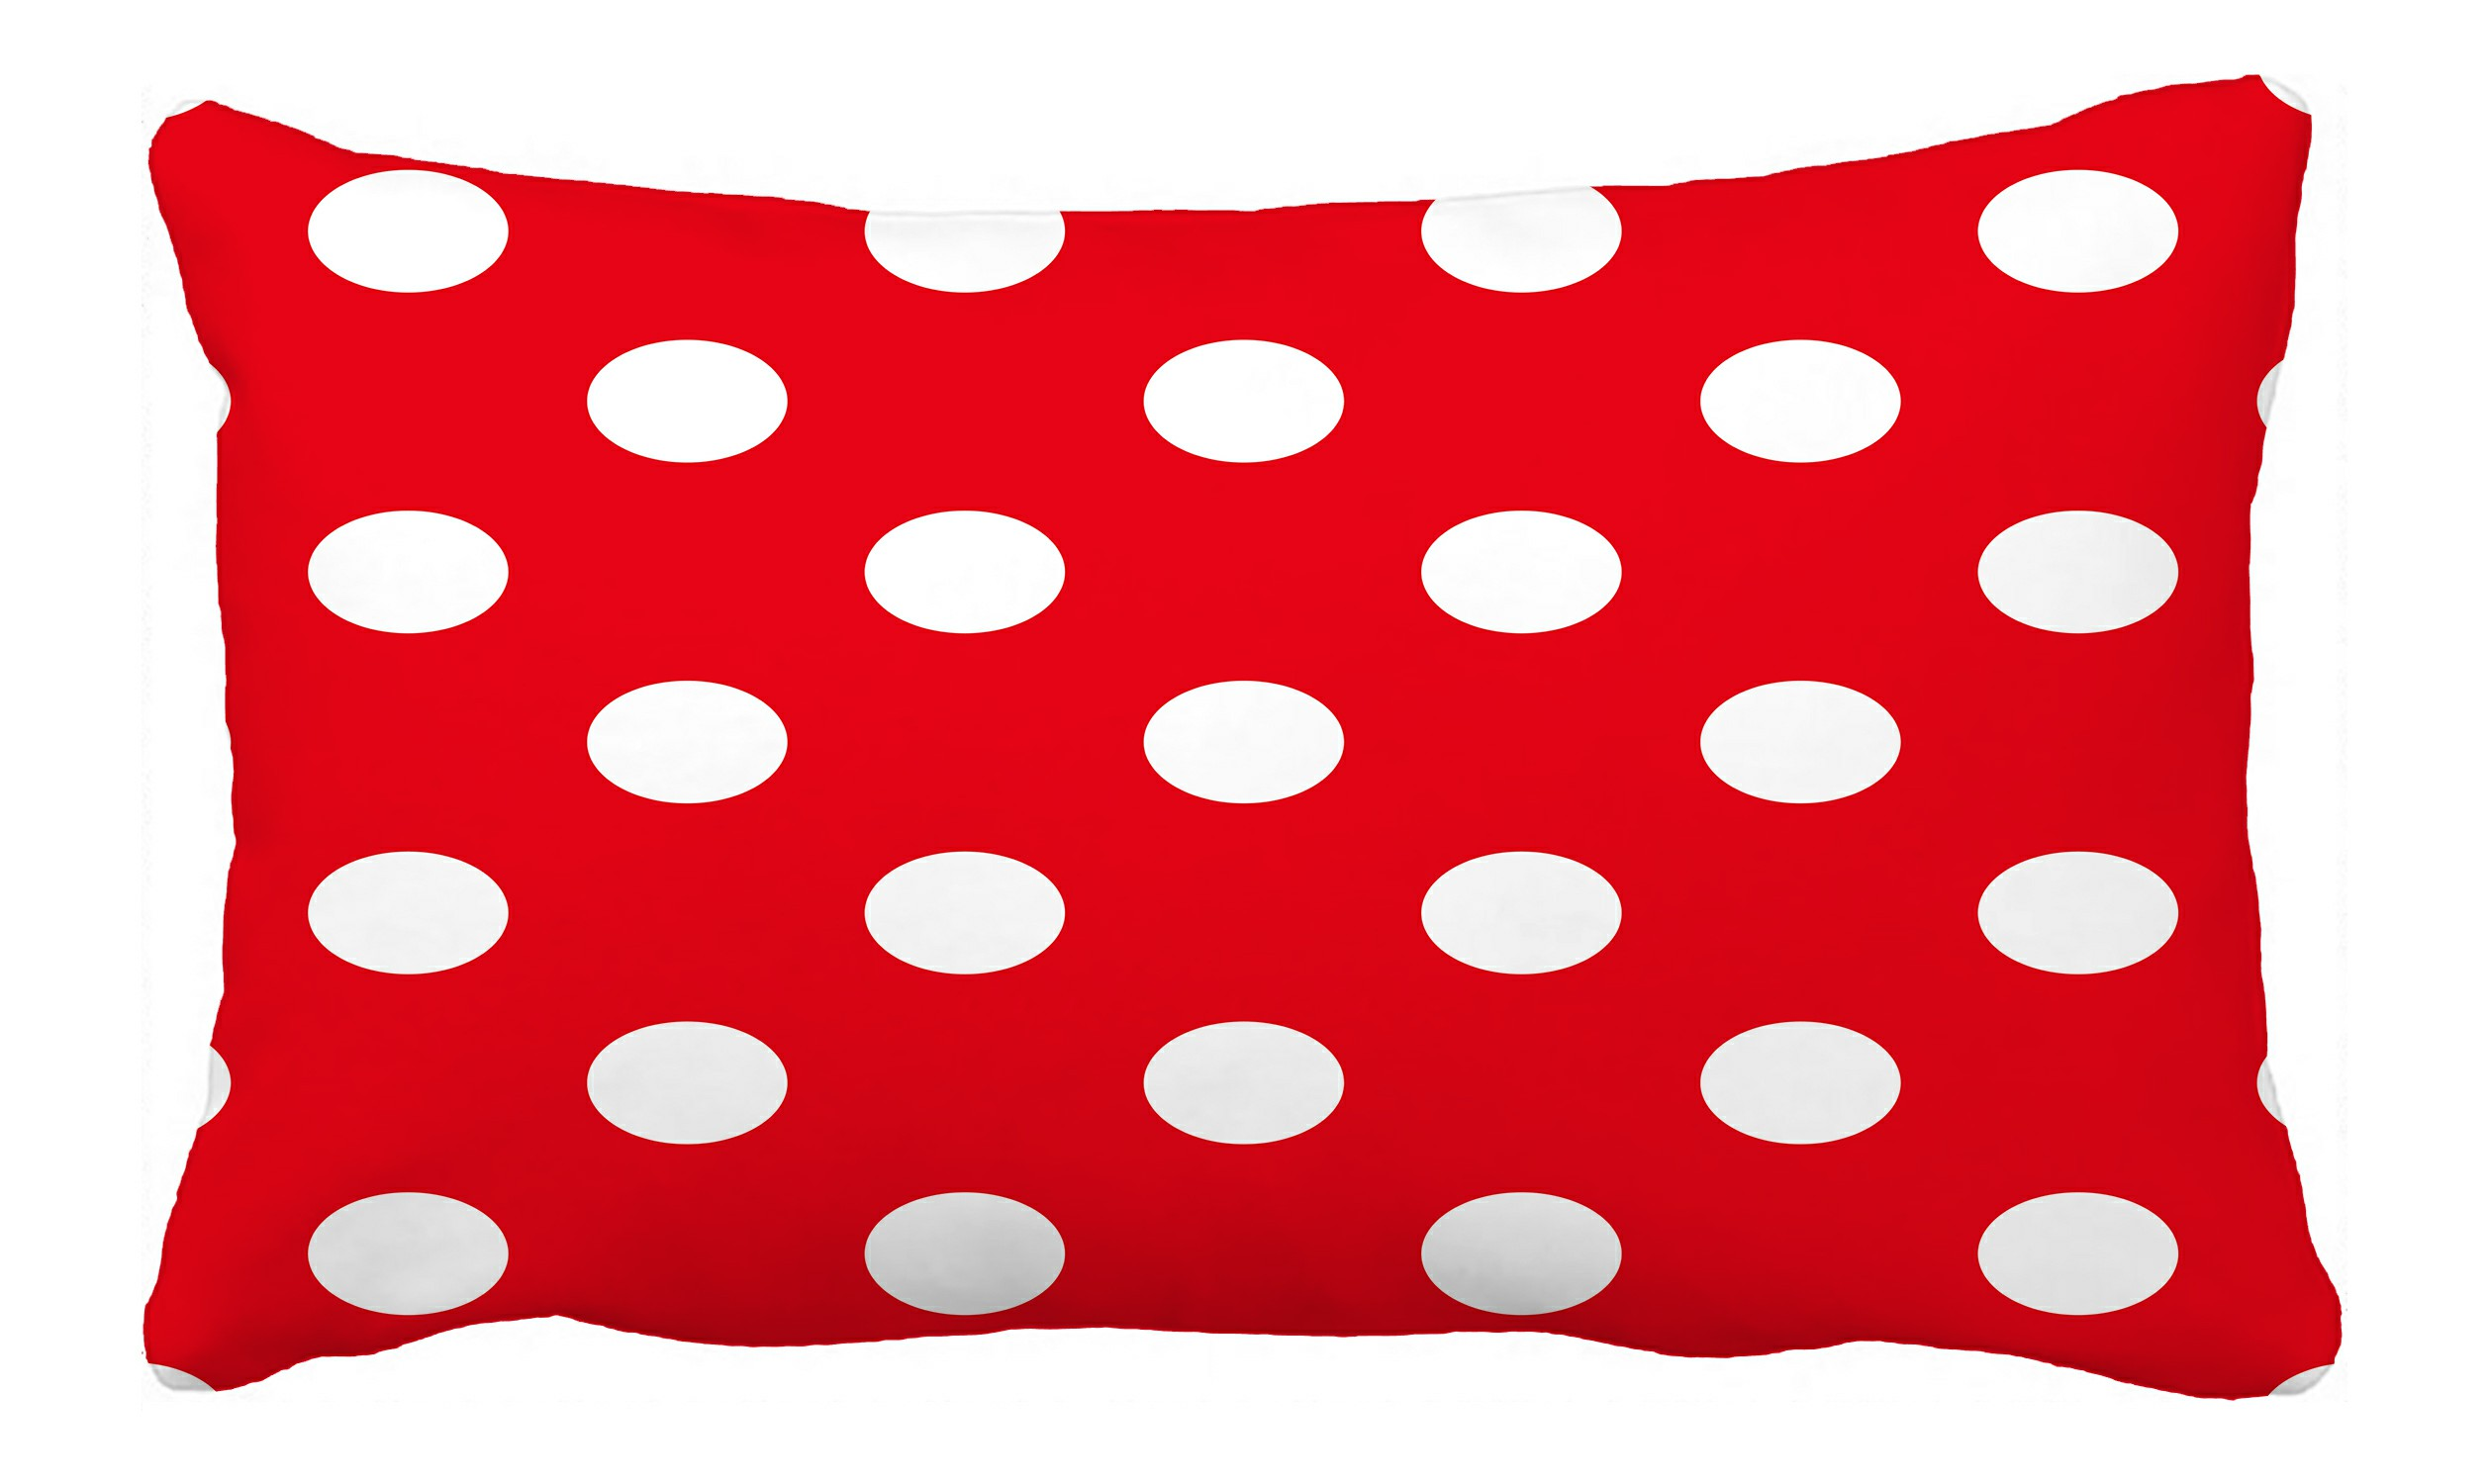 abphqto red polka dot pillow case pillow cover pillow protector two sides for couch bed 20x30 inch walmart com